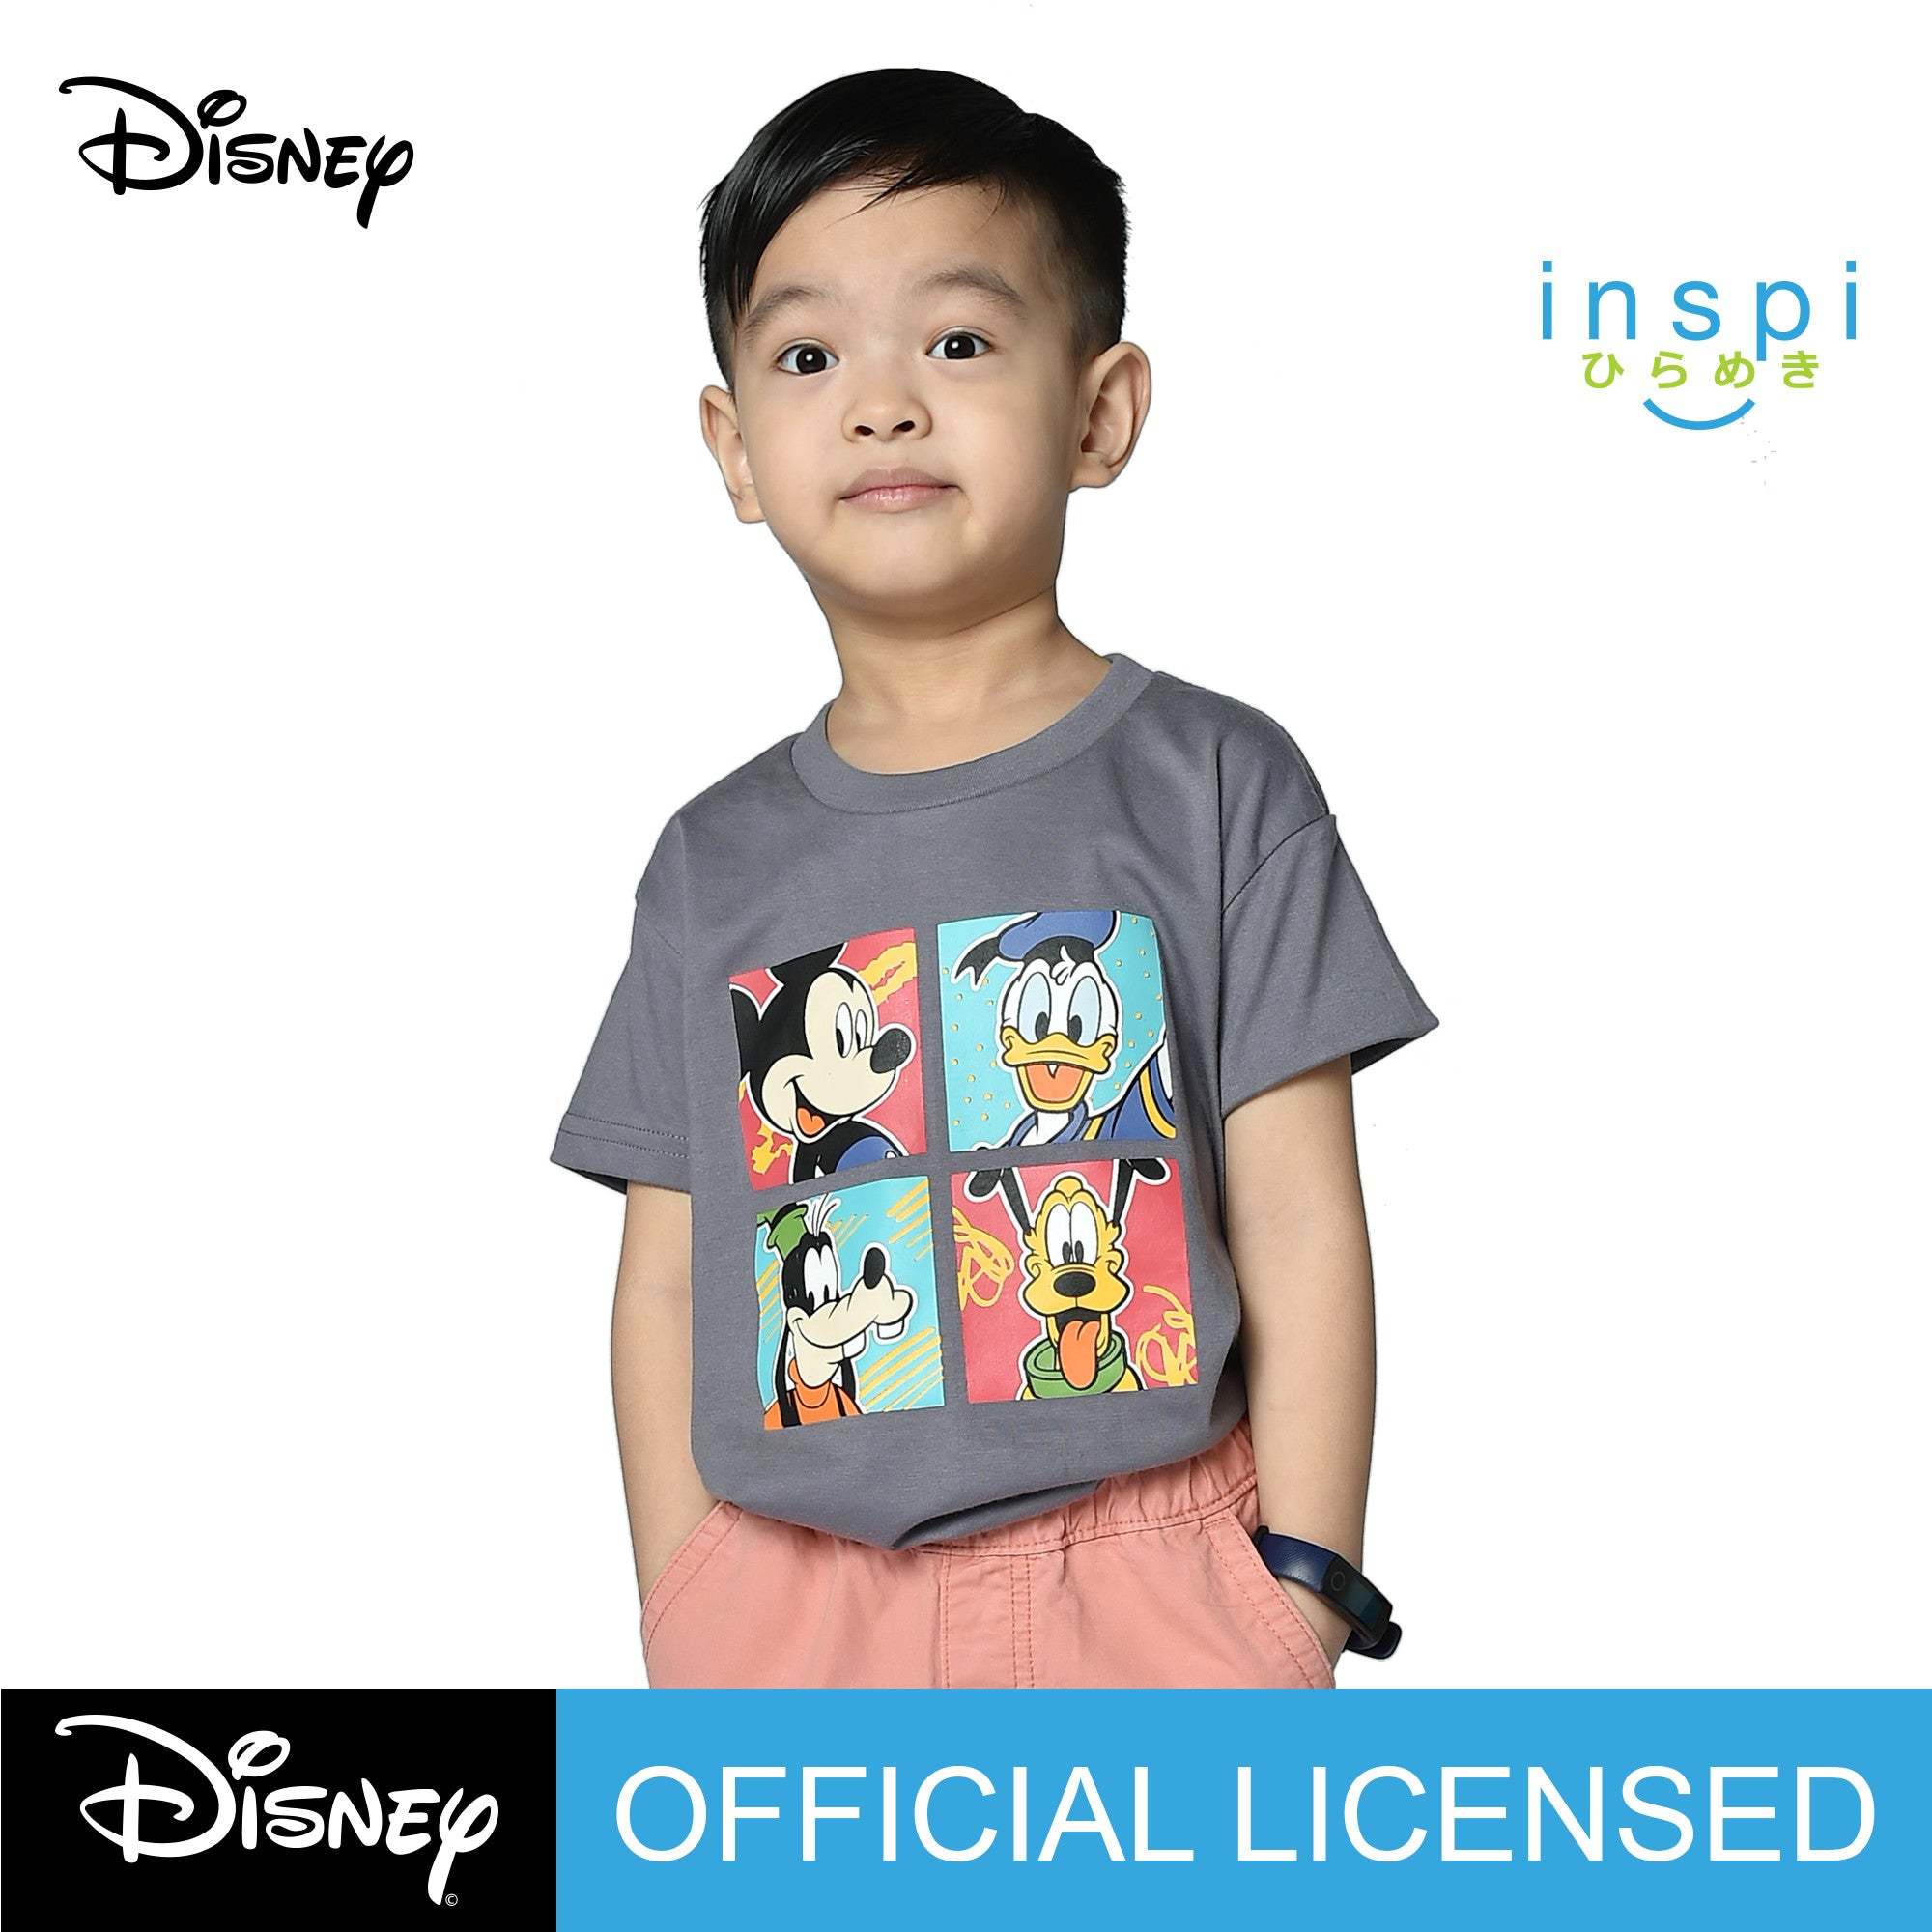 Disney Mickey and Friends Faces Tshirt in Sultry Gray for Boys Inspi Shirt